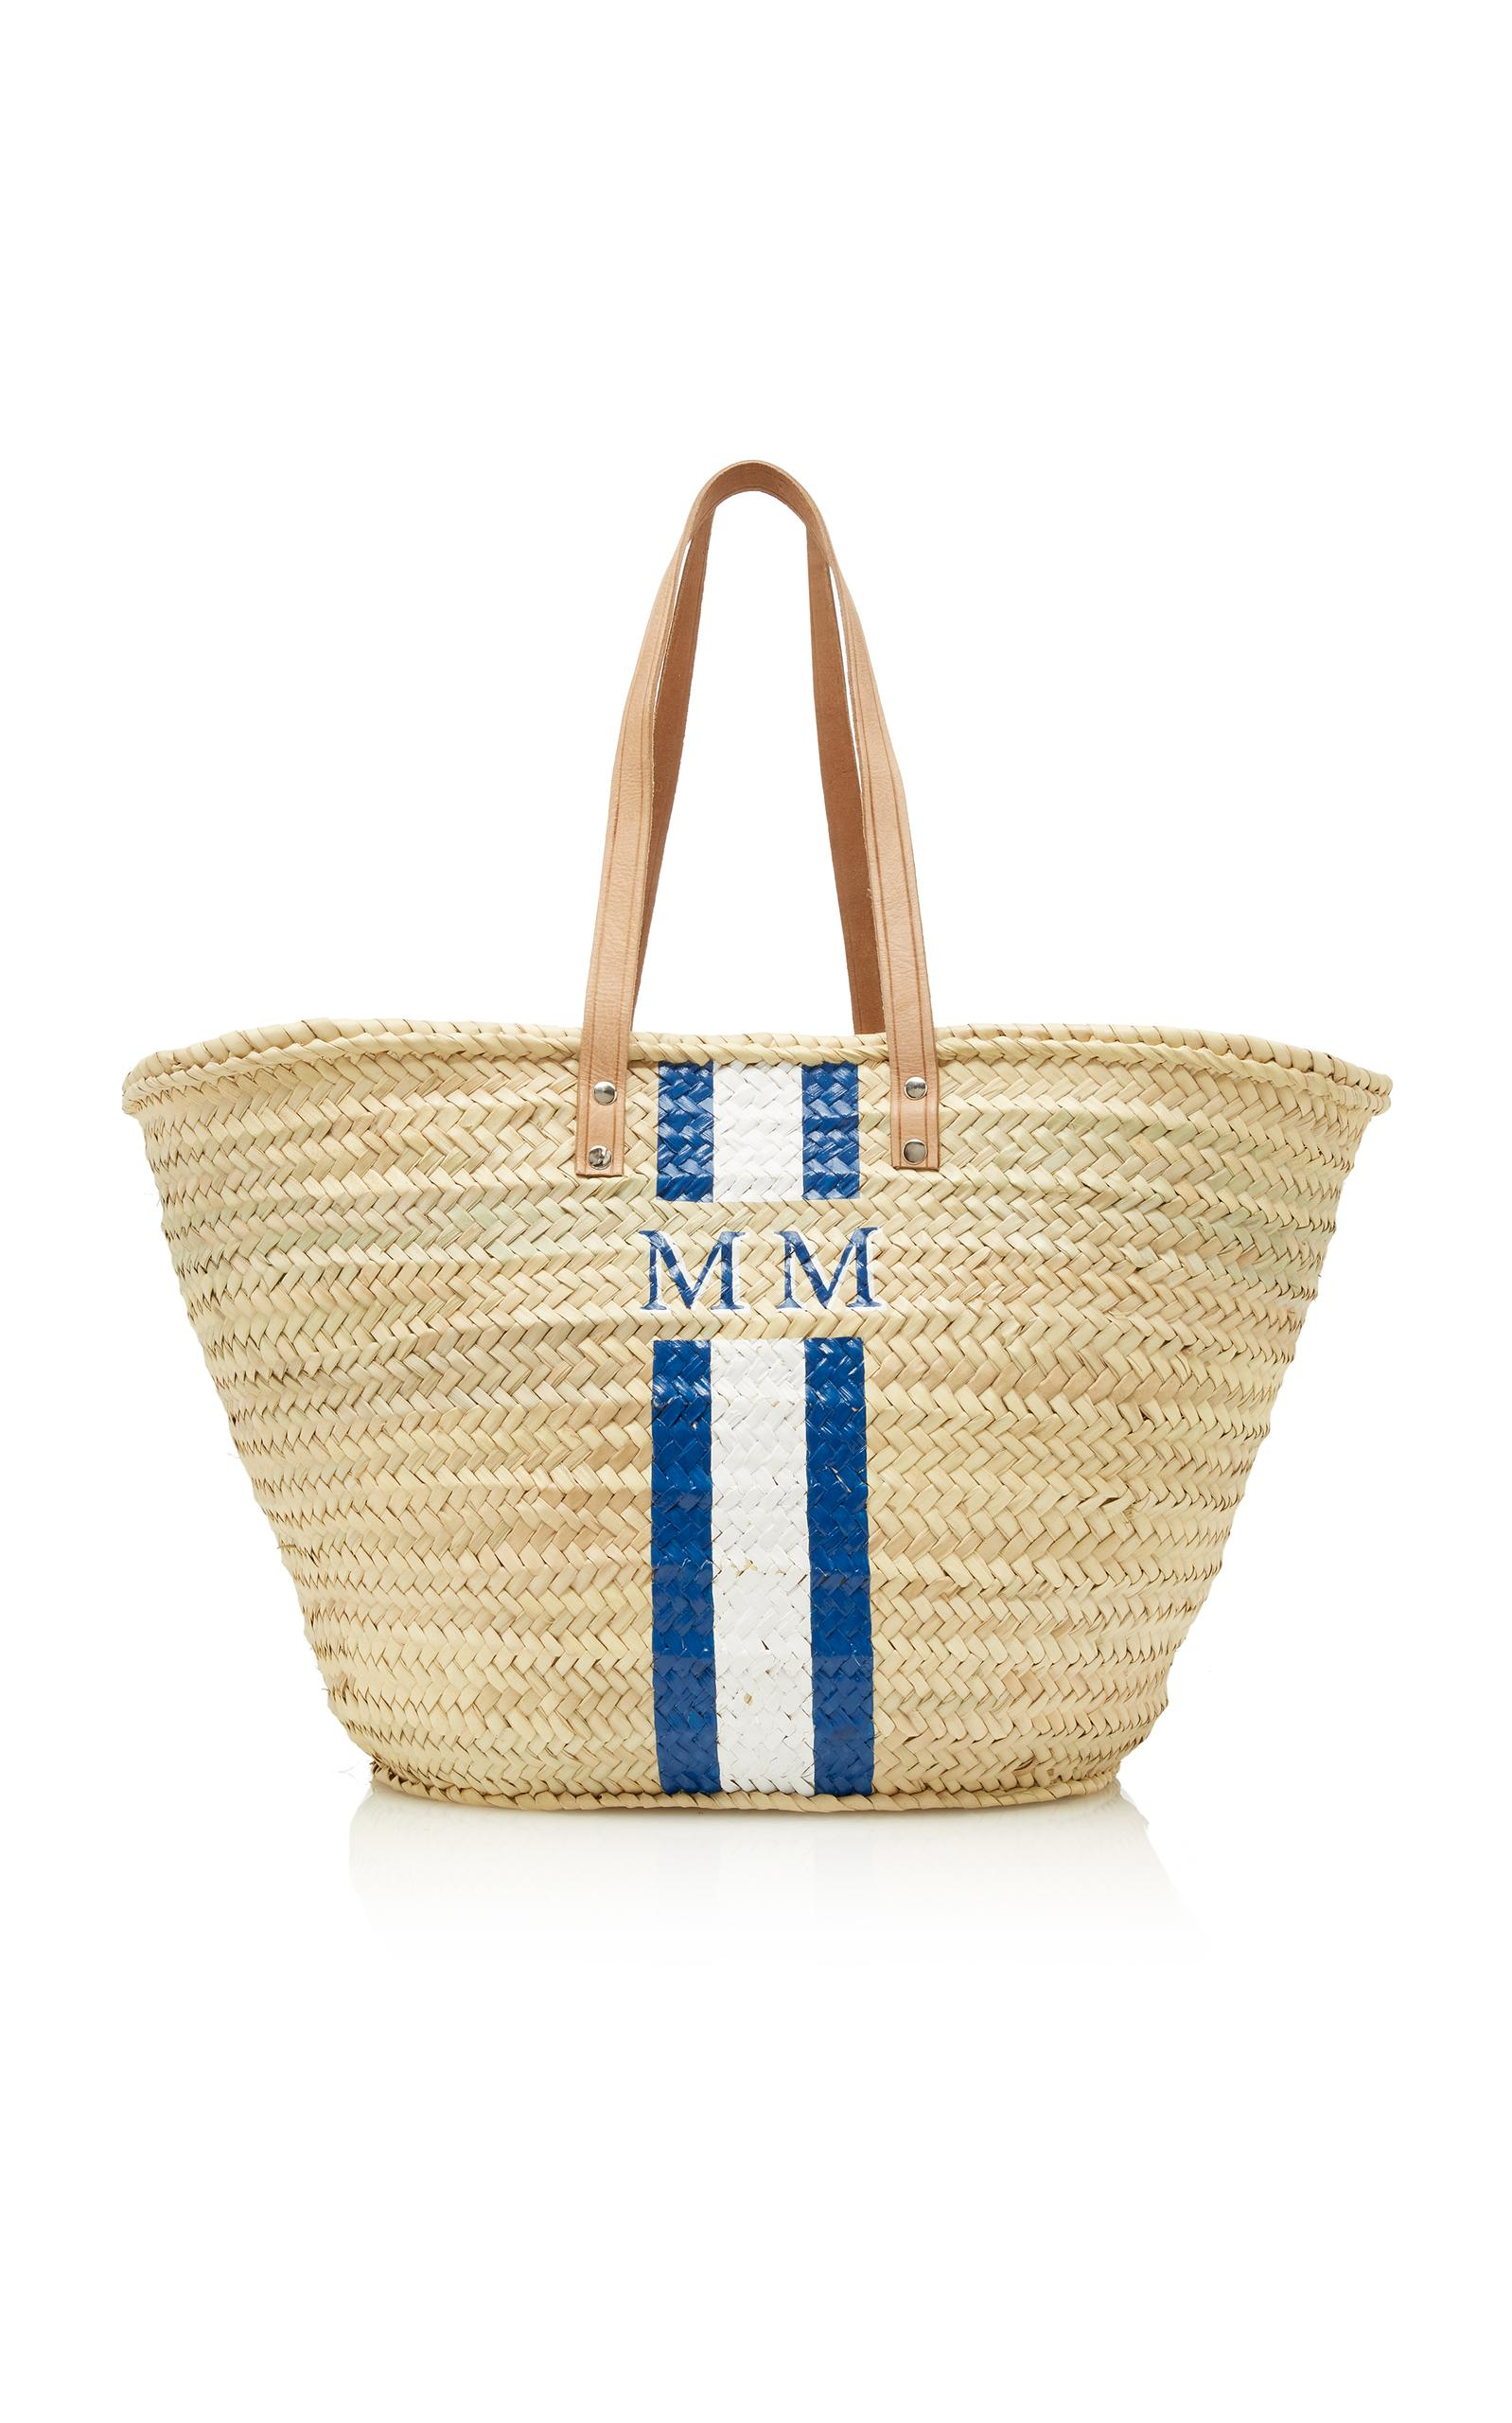 Rae Feather M'o Exclusive Long Handle Basket In Navy